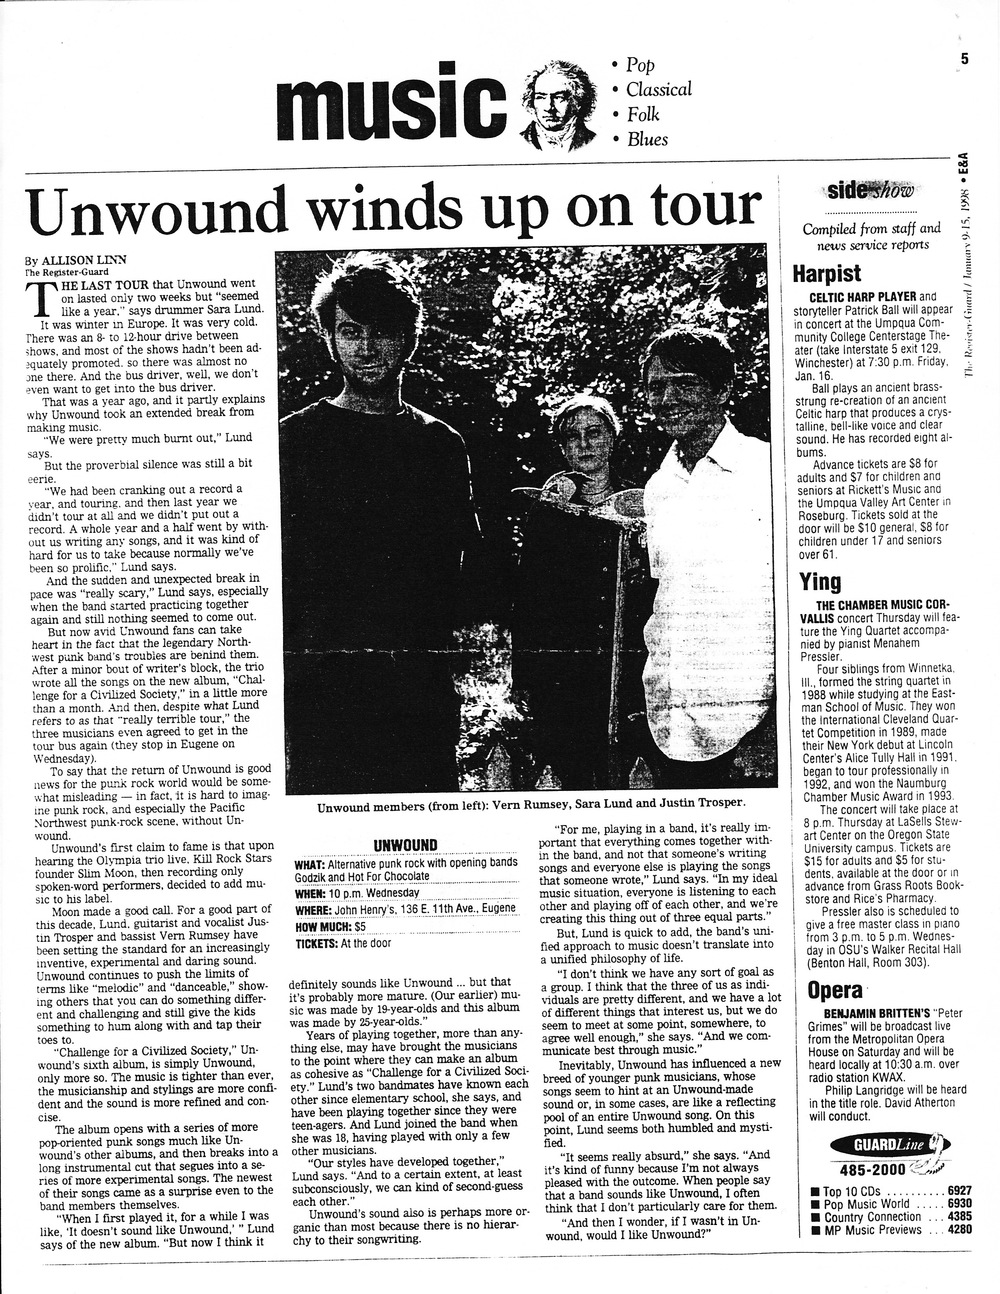 The Register-Guard (Eugene, OR) Jan 1998 p.2